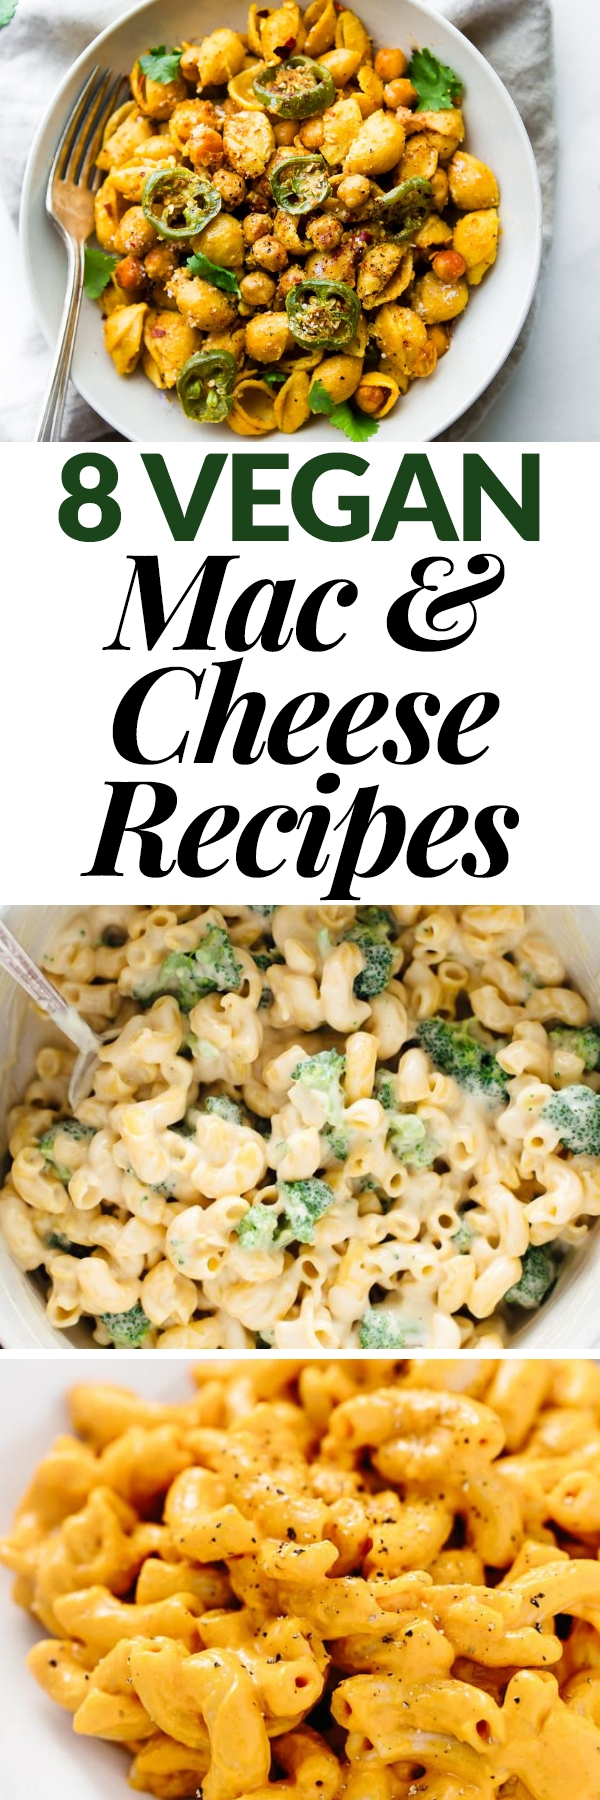 You don't have to give up creamy, dreamy mac and cheese when you eat vegan! These 8 mouthwatering vegan mac and cheese recipes are sure to be a hit with everyone. Make them for weeknight meals or serve them to a crowd!